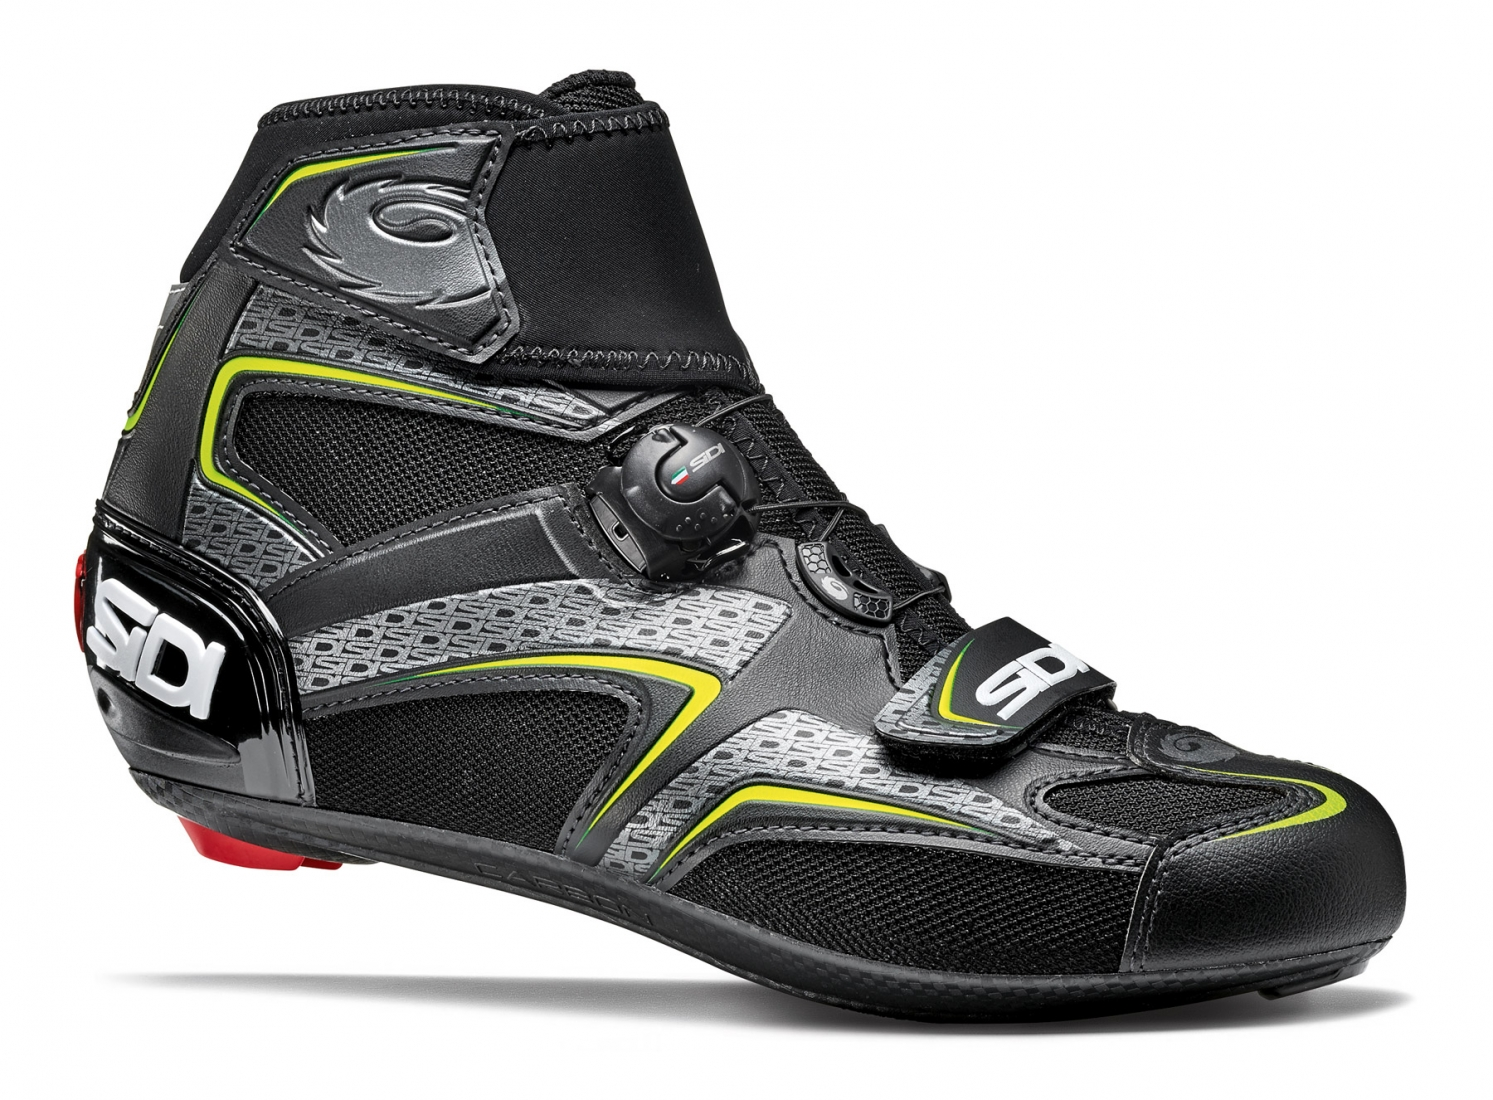 Sidi Zero Gore cycling shoes